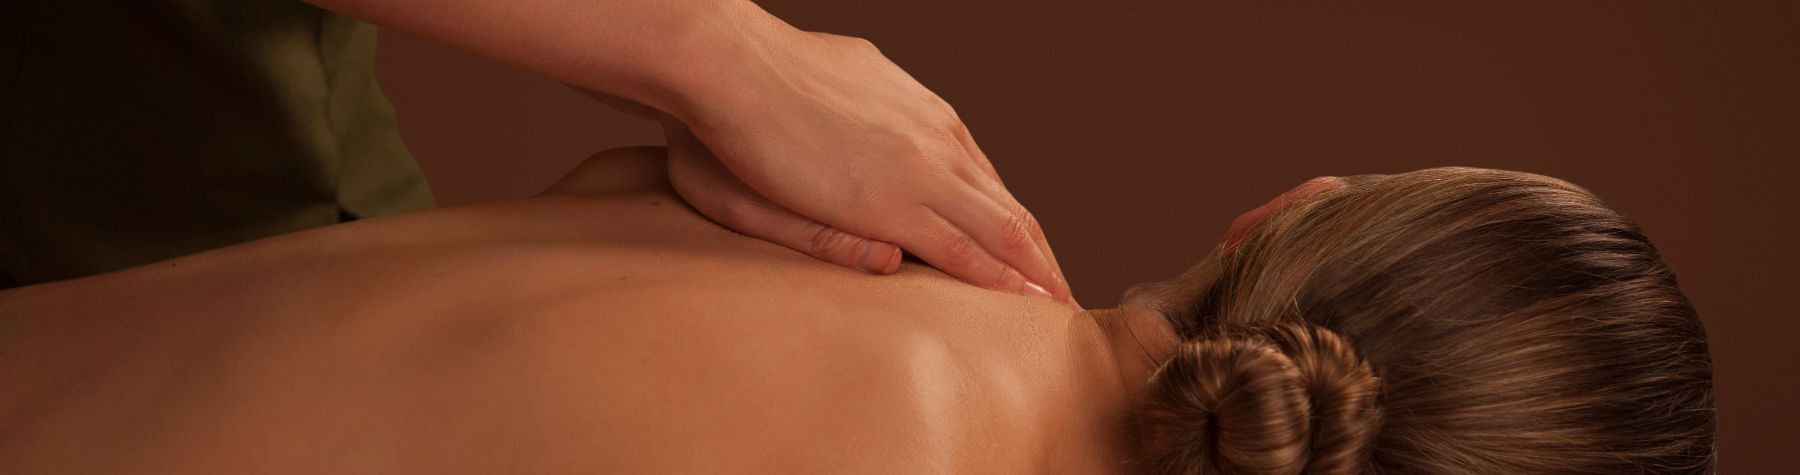 voyager-massage-special-offer